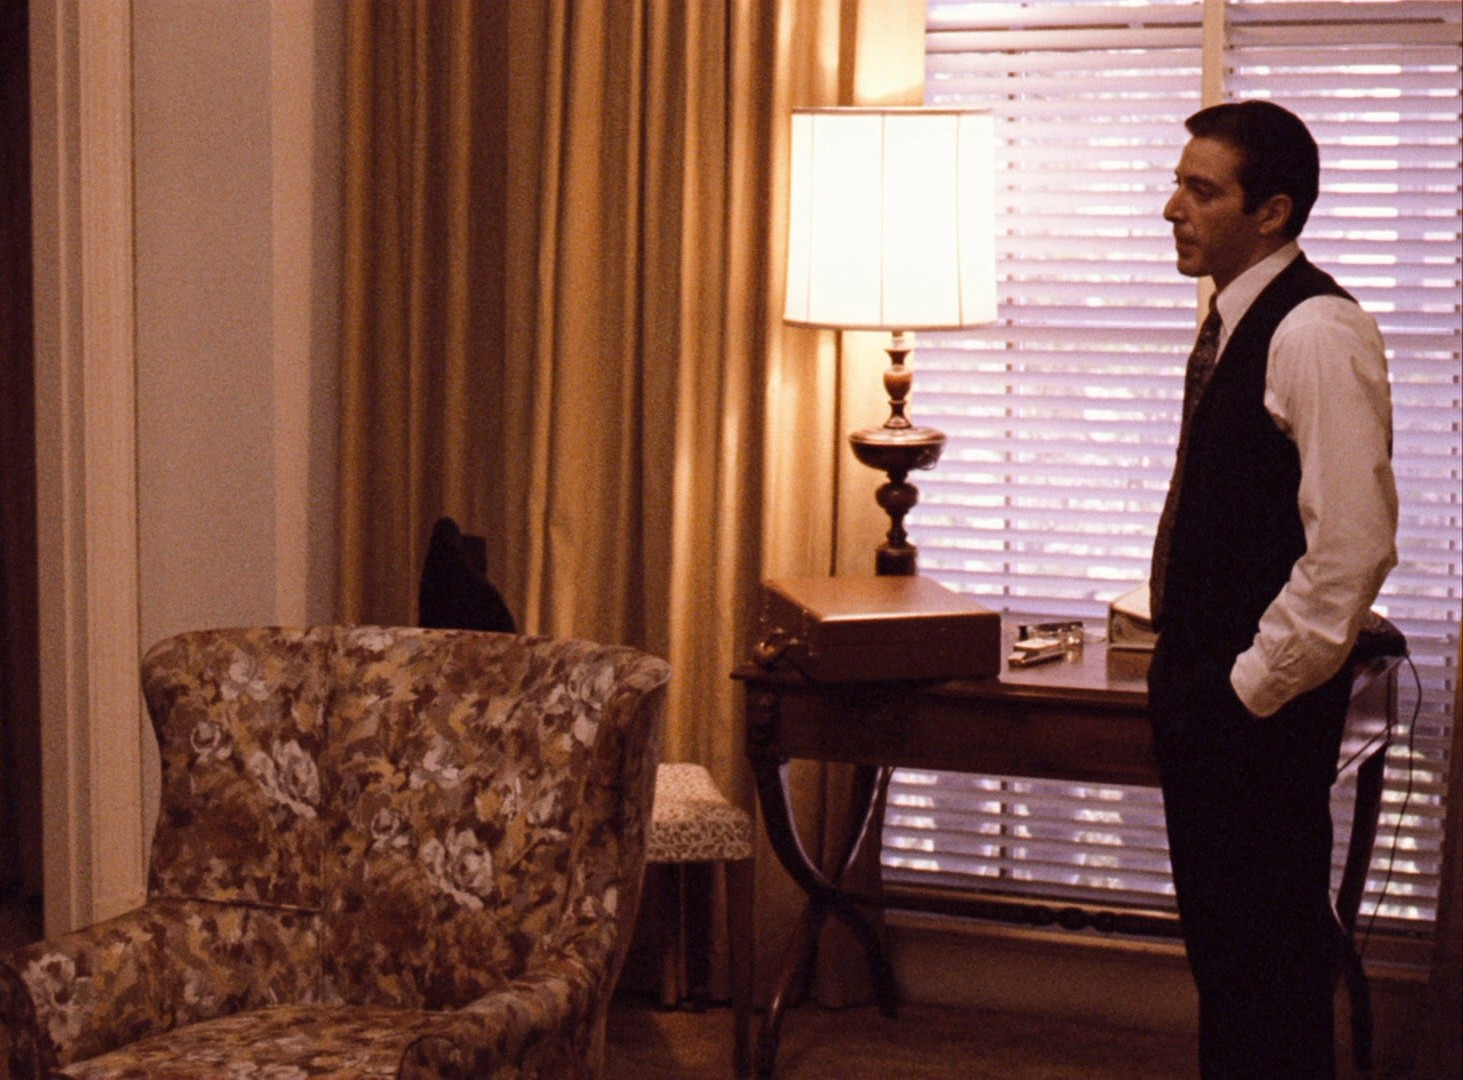 godfather book vs movie essay A summary of themes in 's the godfather trilogy learn exactly what happened in this chapter, scene, or section of the godfather trilogy and what it means perfect for acing essays, tests, and quizzes, as well as for writing lesson plans.